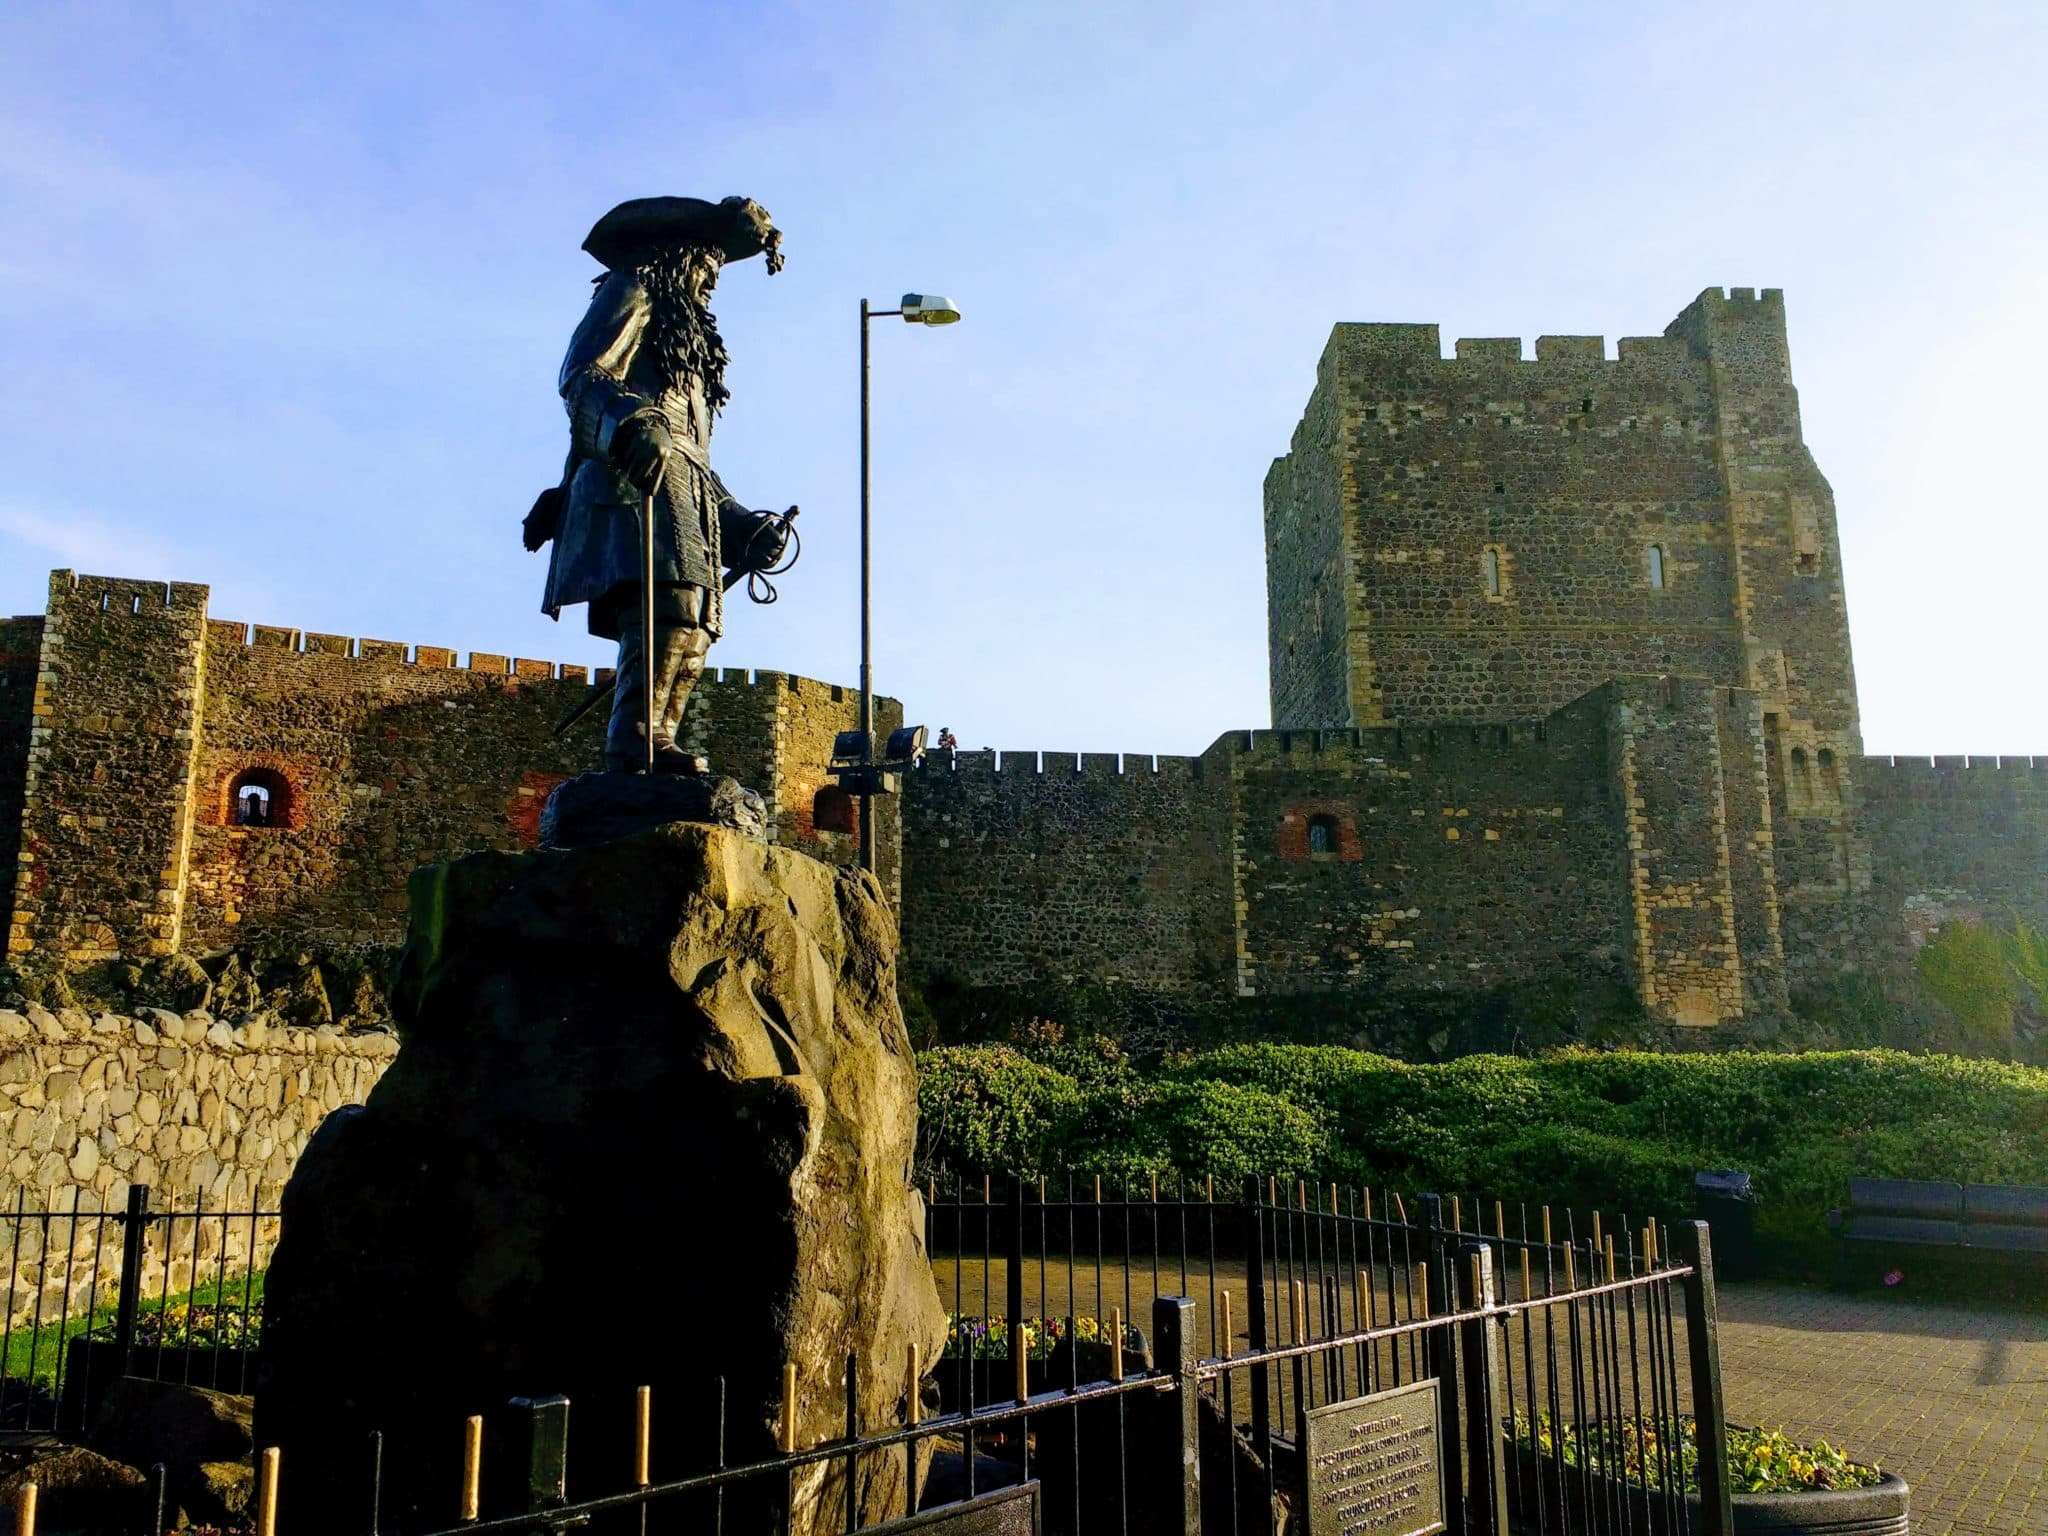 Carrickfergus on the Causeway Coastal route of northern Irelnad